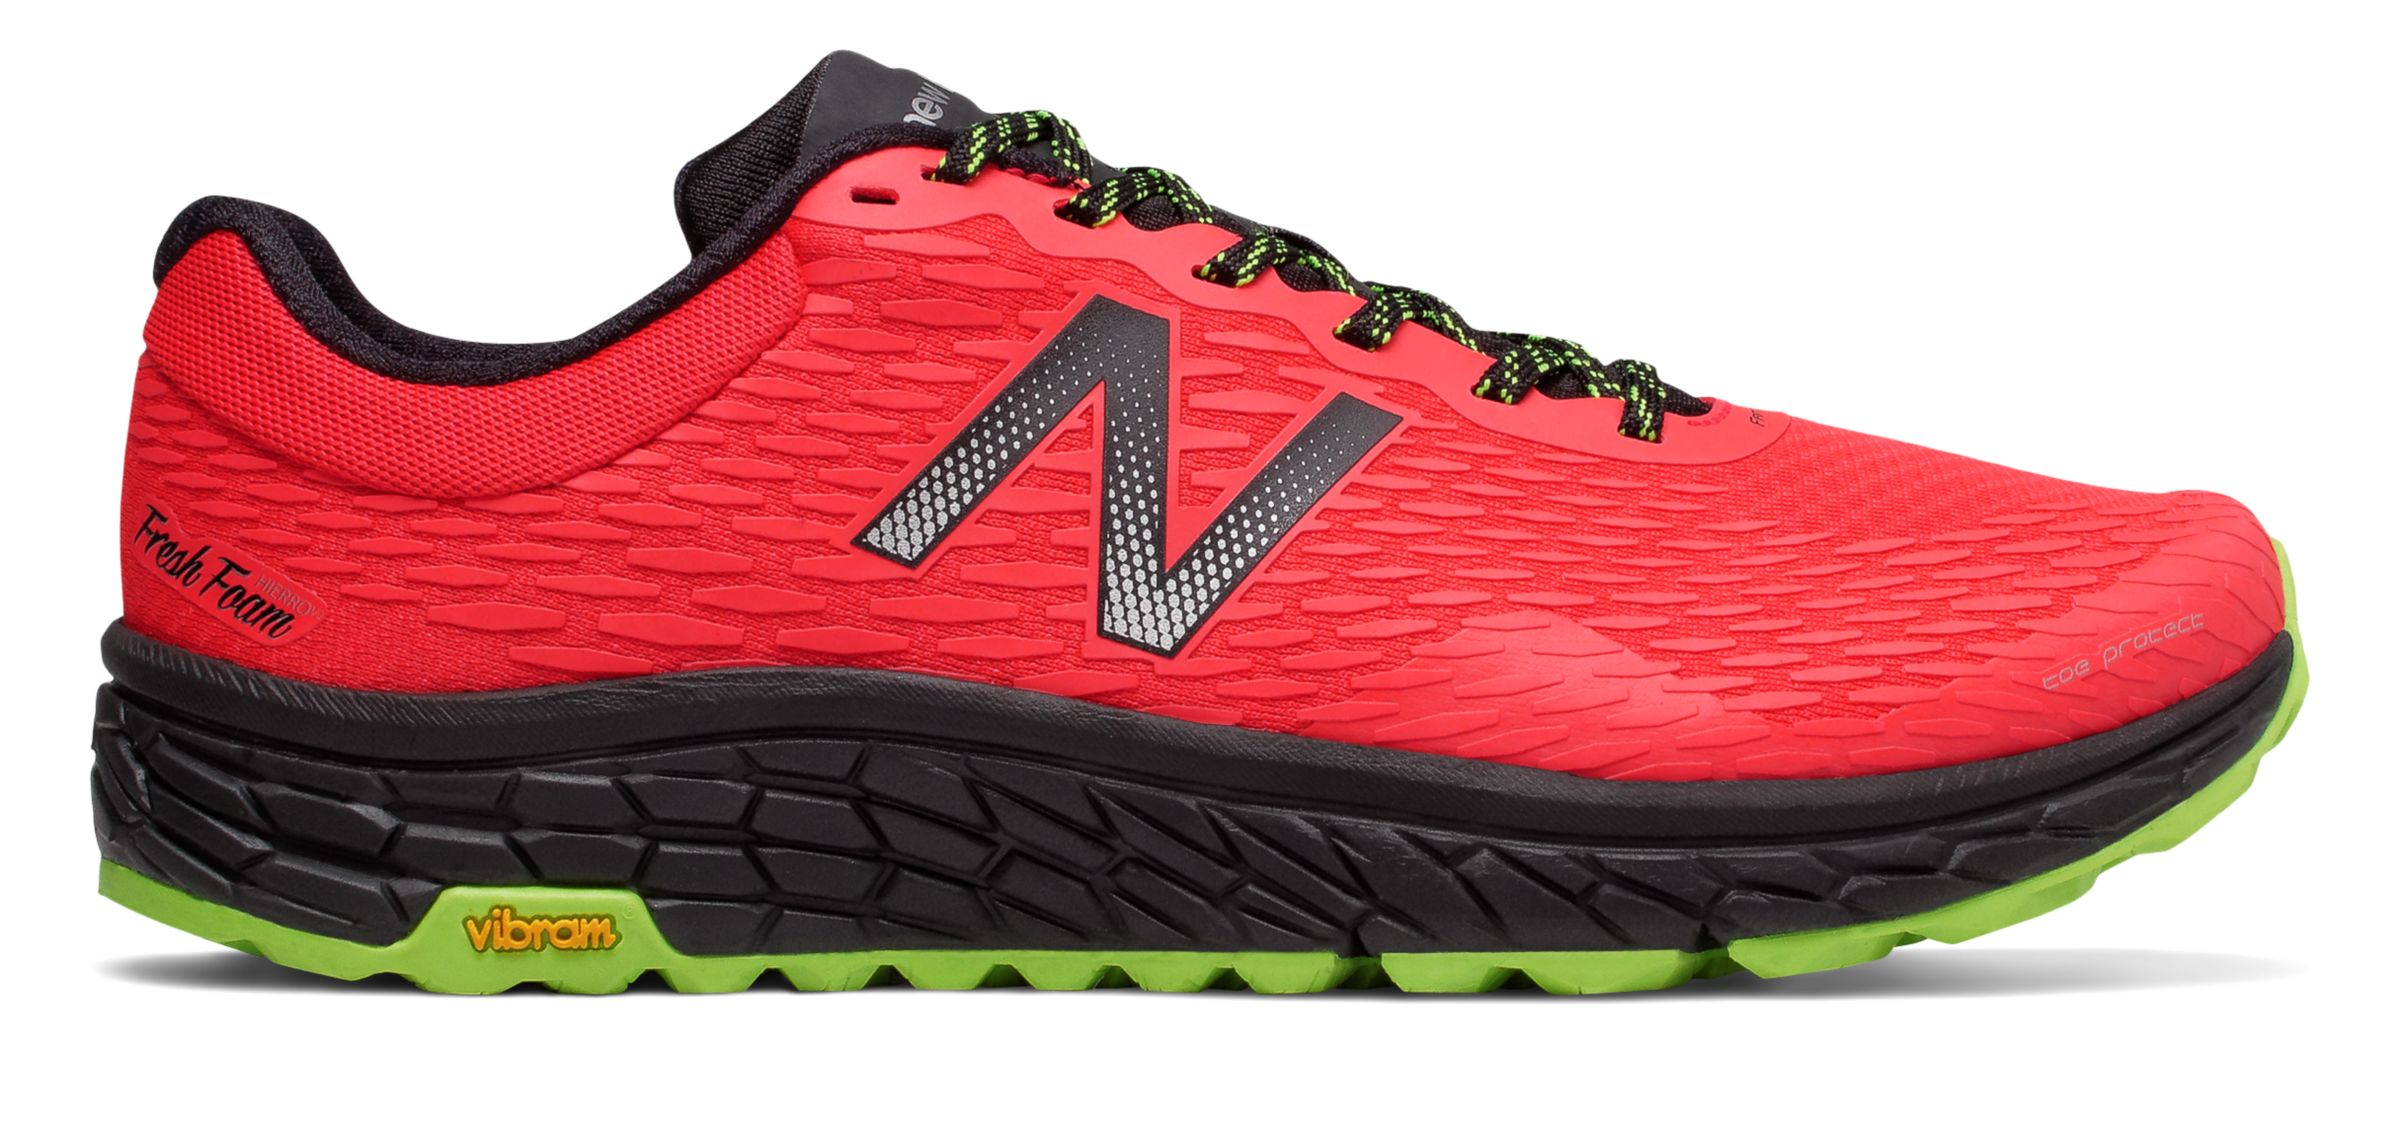 NB Fresh Foam Hierro v2, Energy Red with Energy Lime